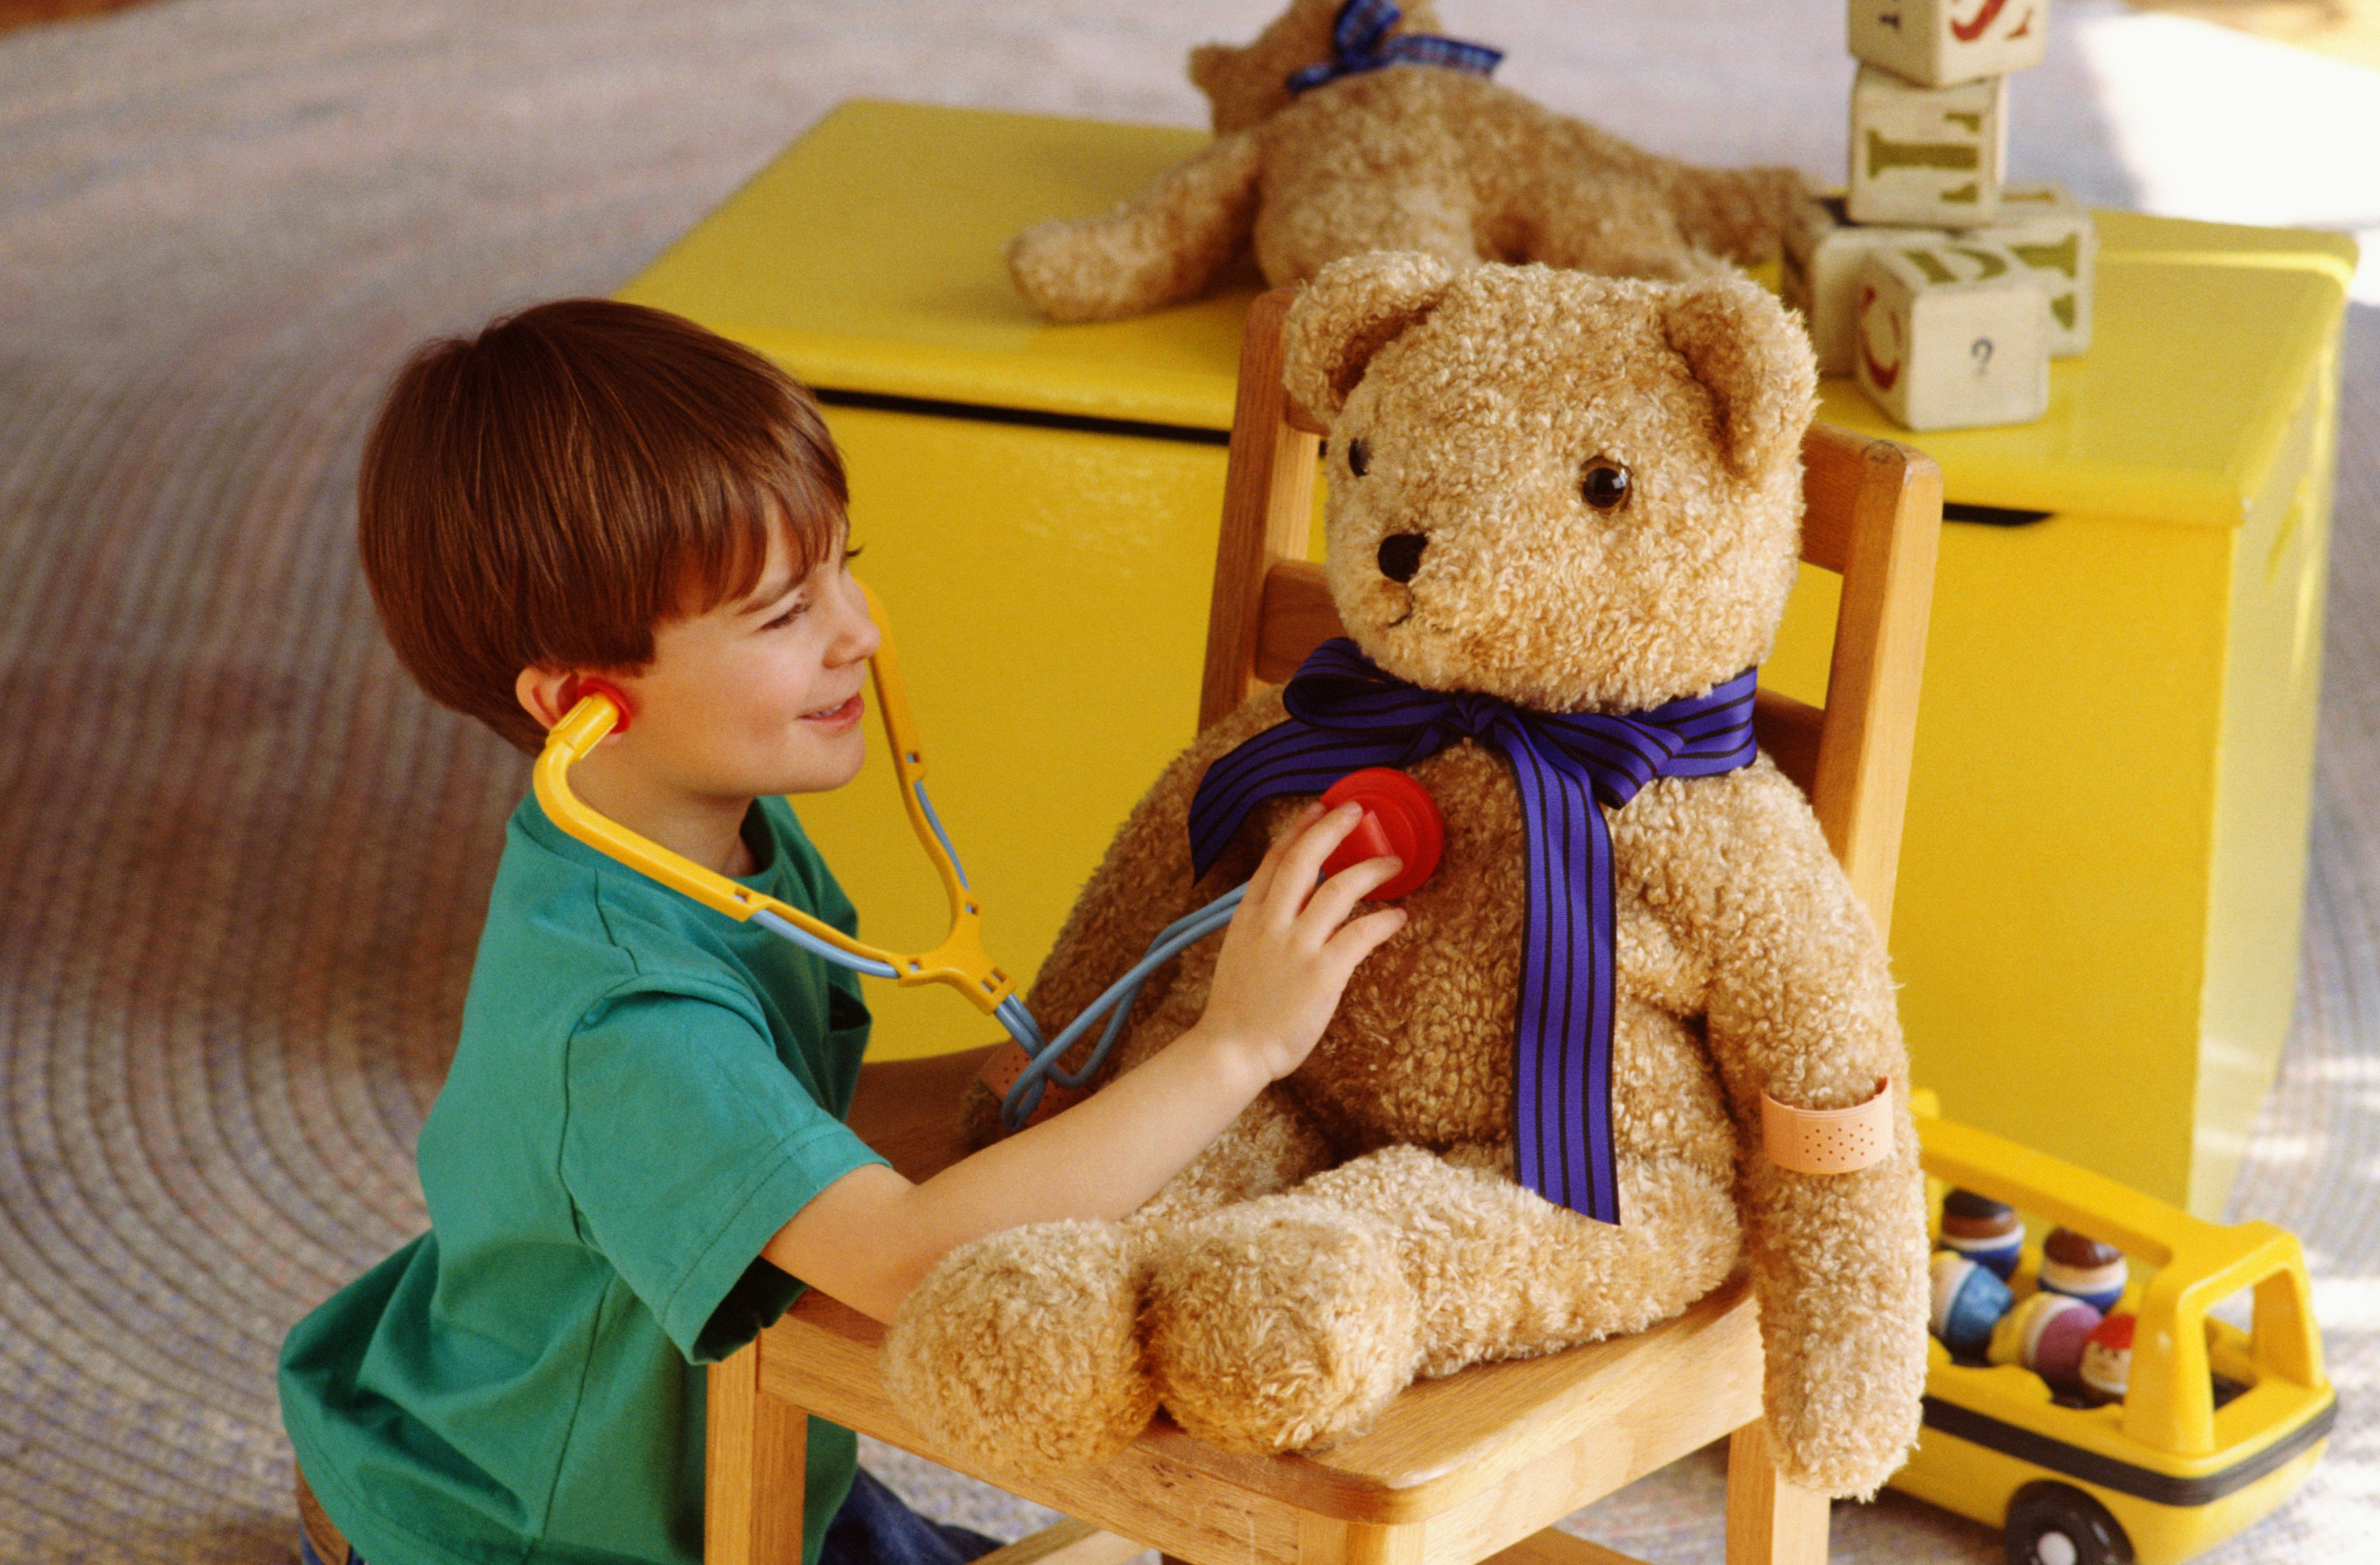 pretend play ideas - boy playing doctor with toy bear and stethoscope